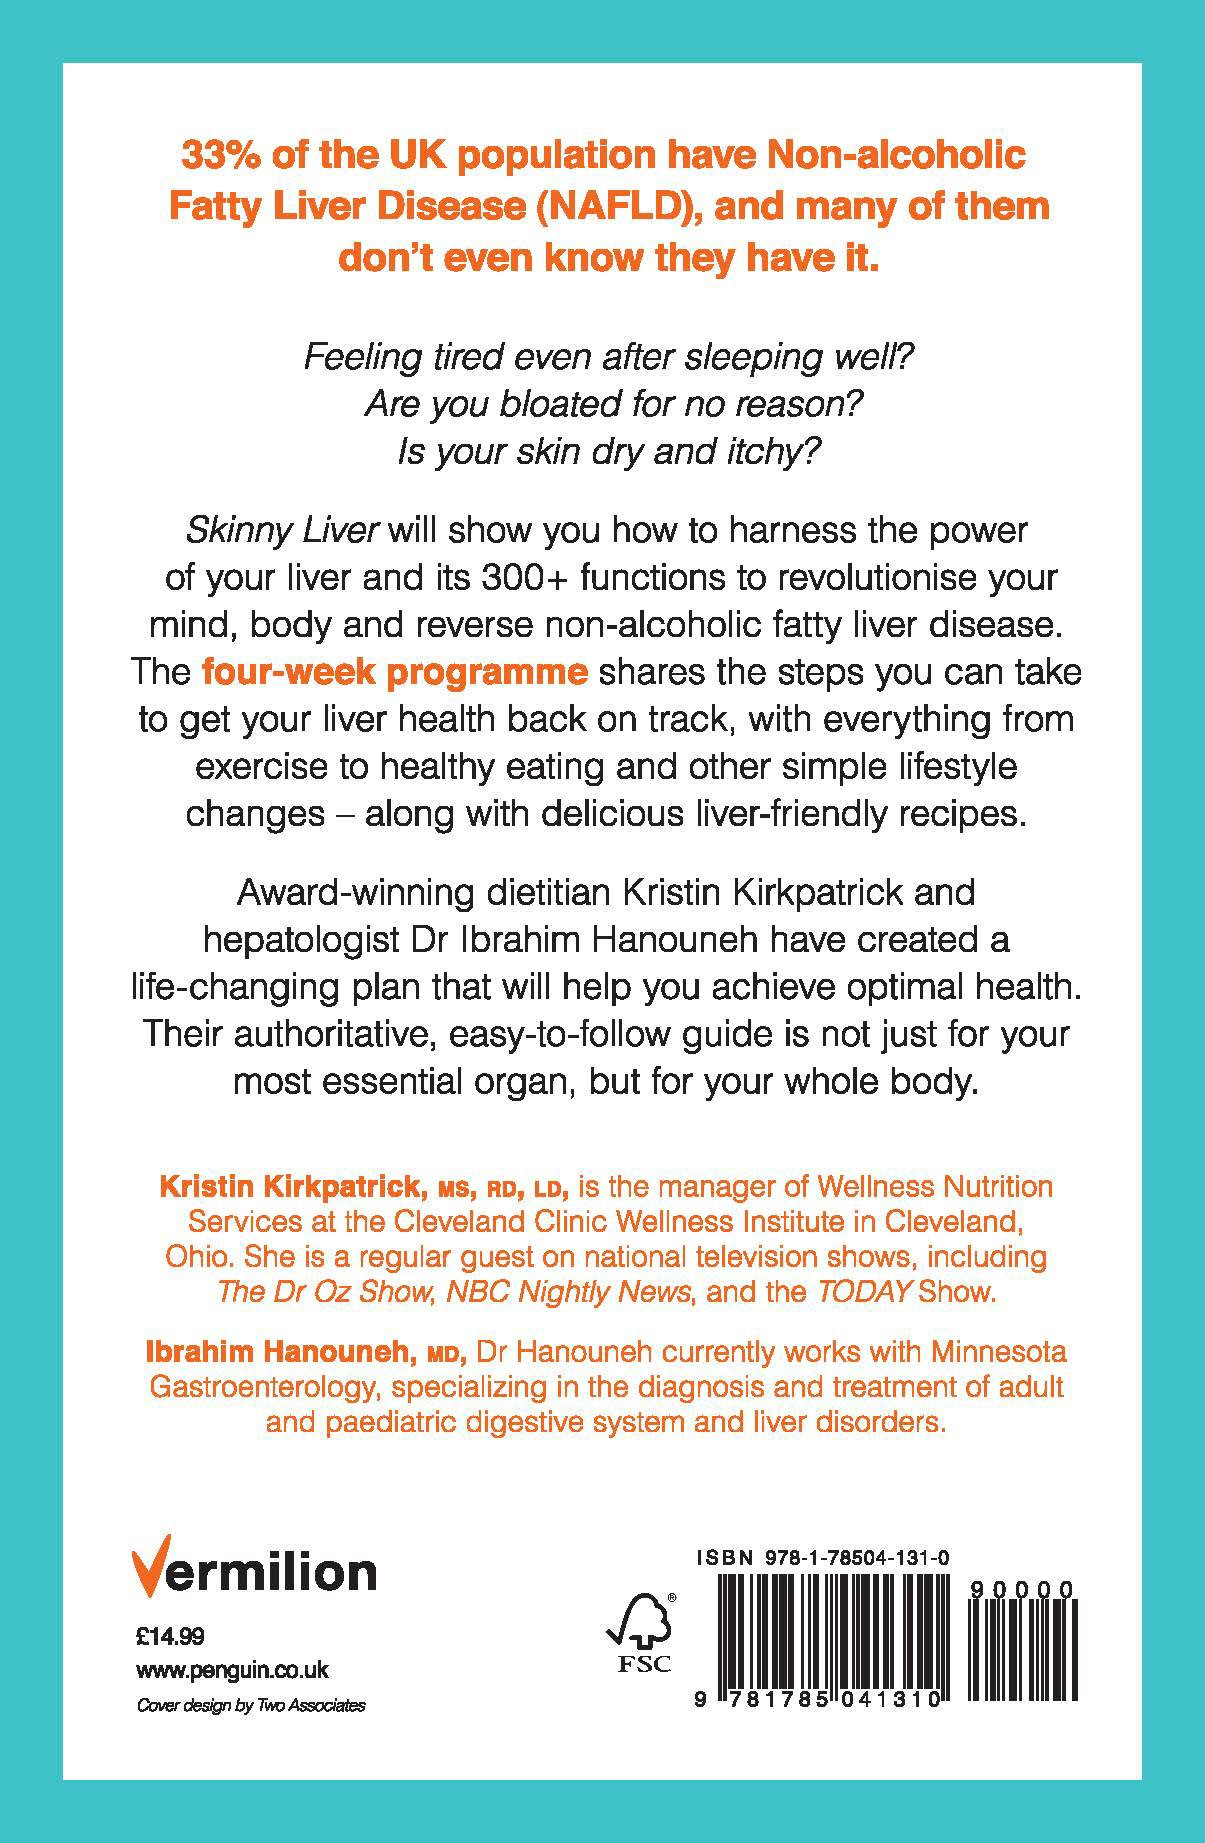 Skinny Liver Lose The Fat And Lose The Toxins For Increased Energy